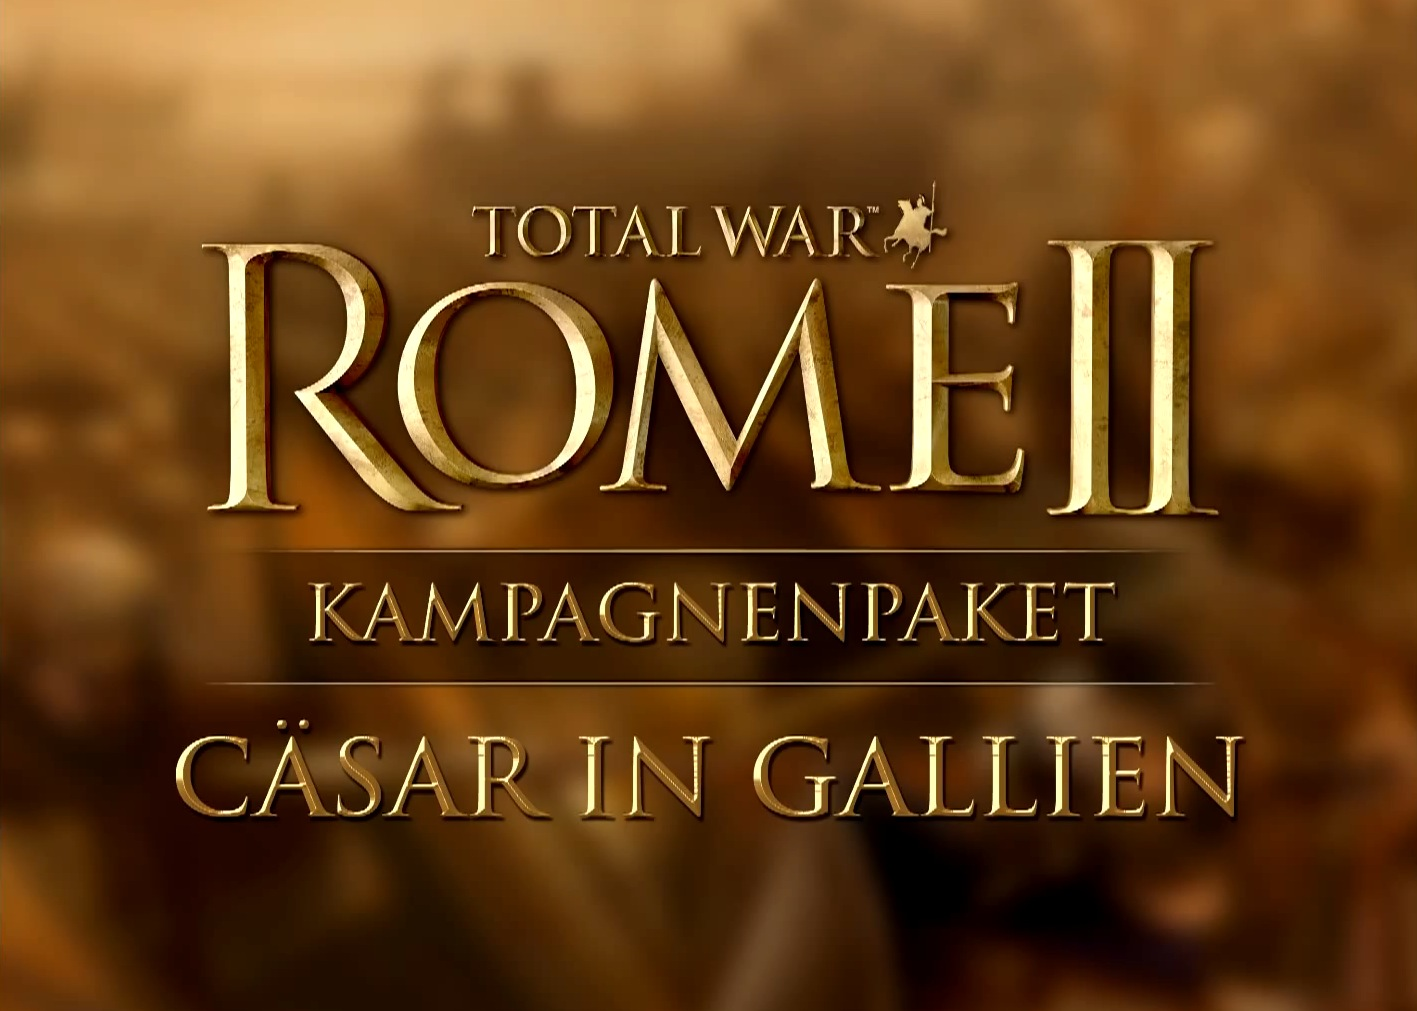 Total War Rome 2 - Cäsar in Gallien